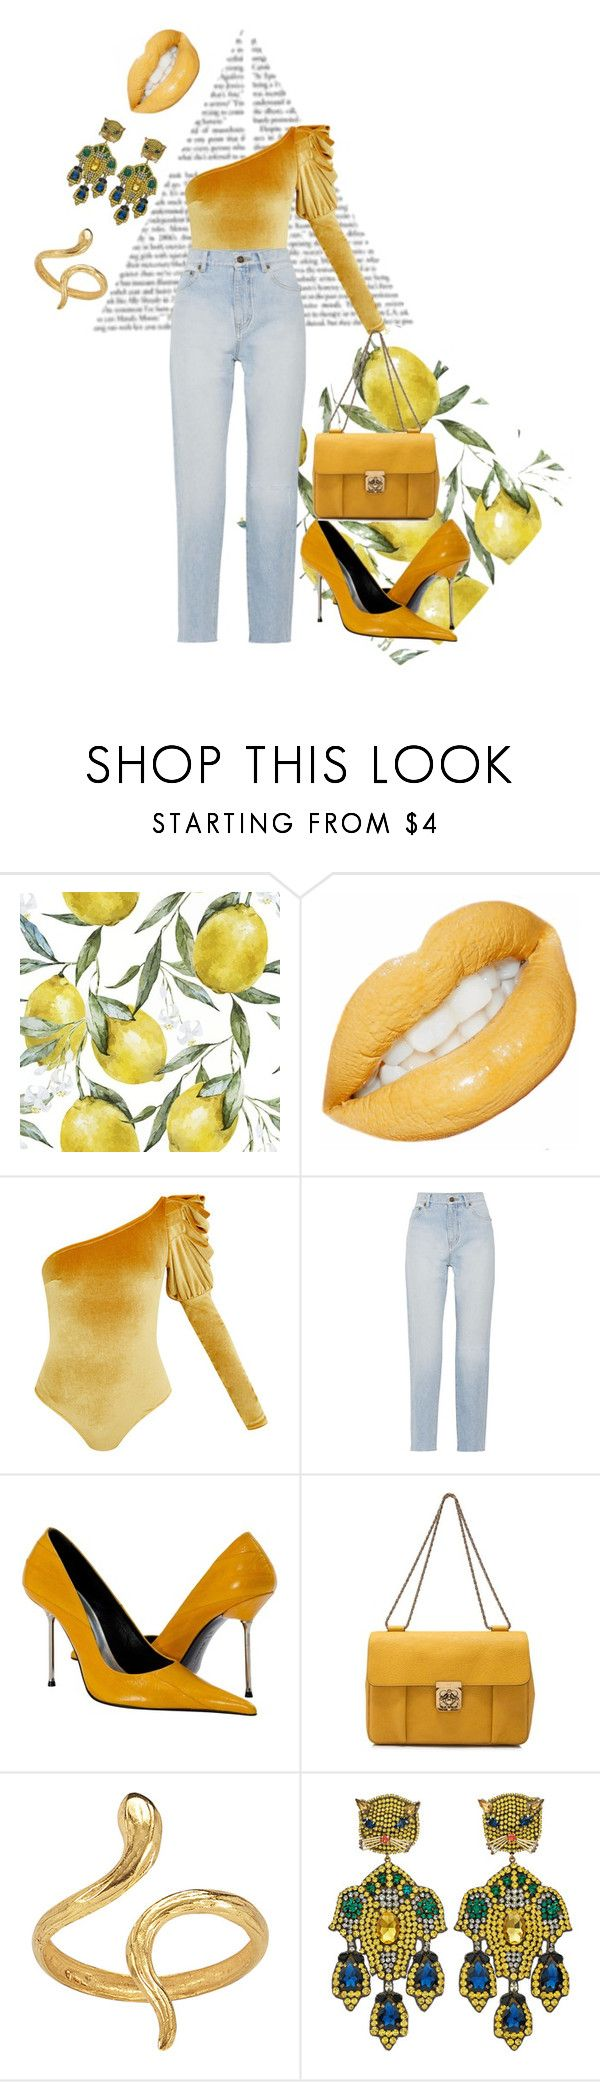 """Untitled #40"" by molly-h-james ❤ liked on Polyvore featuring Yves Saint Laurent, Chloé, Madina Visconti di Modrone and Gucci"